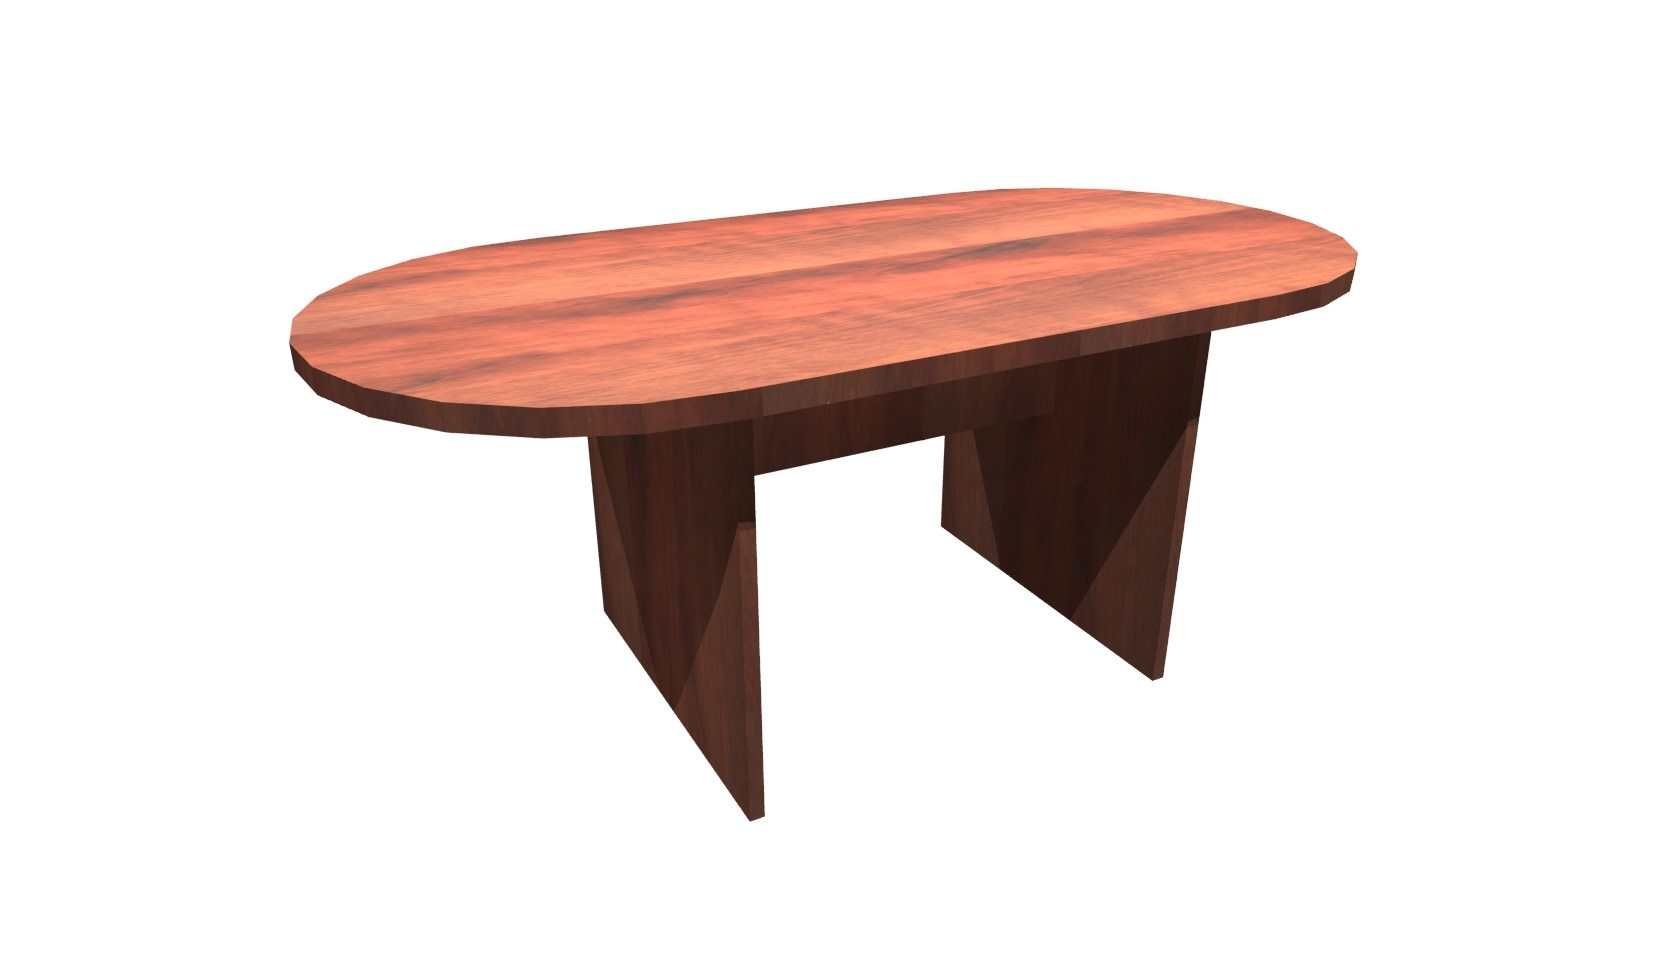 FT Cherry Racetrack Conference Table - 6 ft conference table